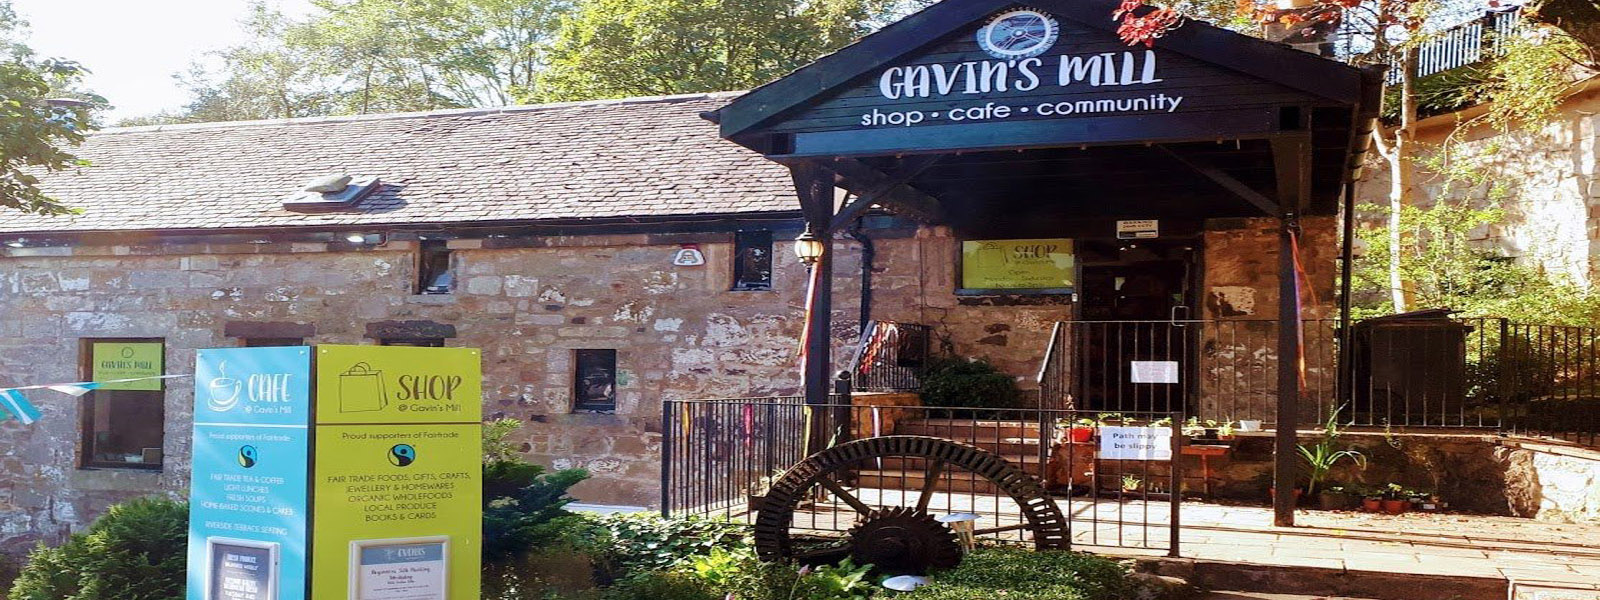 Major milestone: Gavin's Mill bought by the community